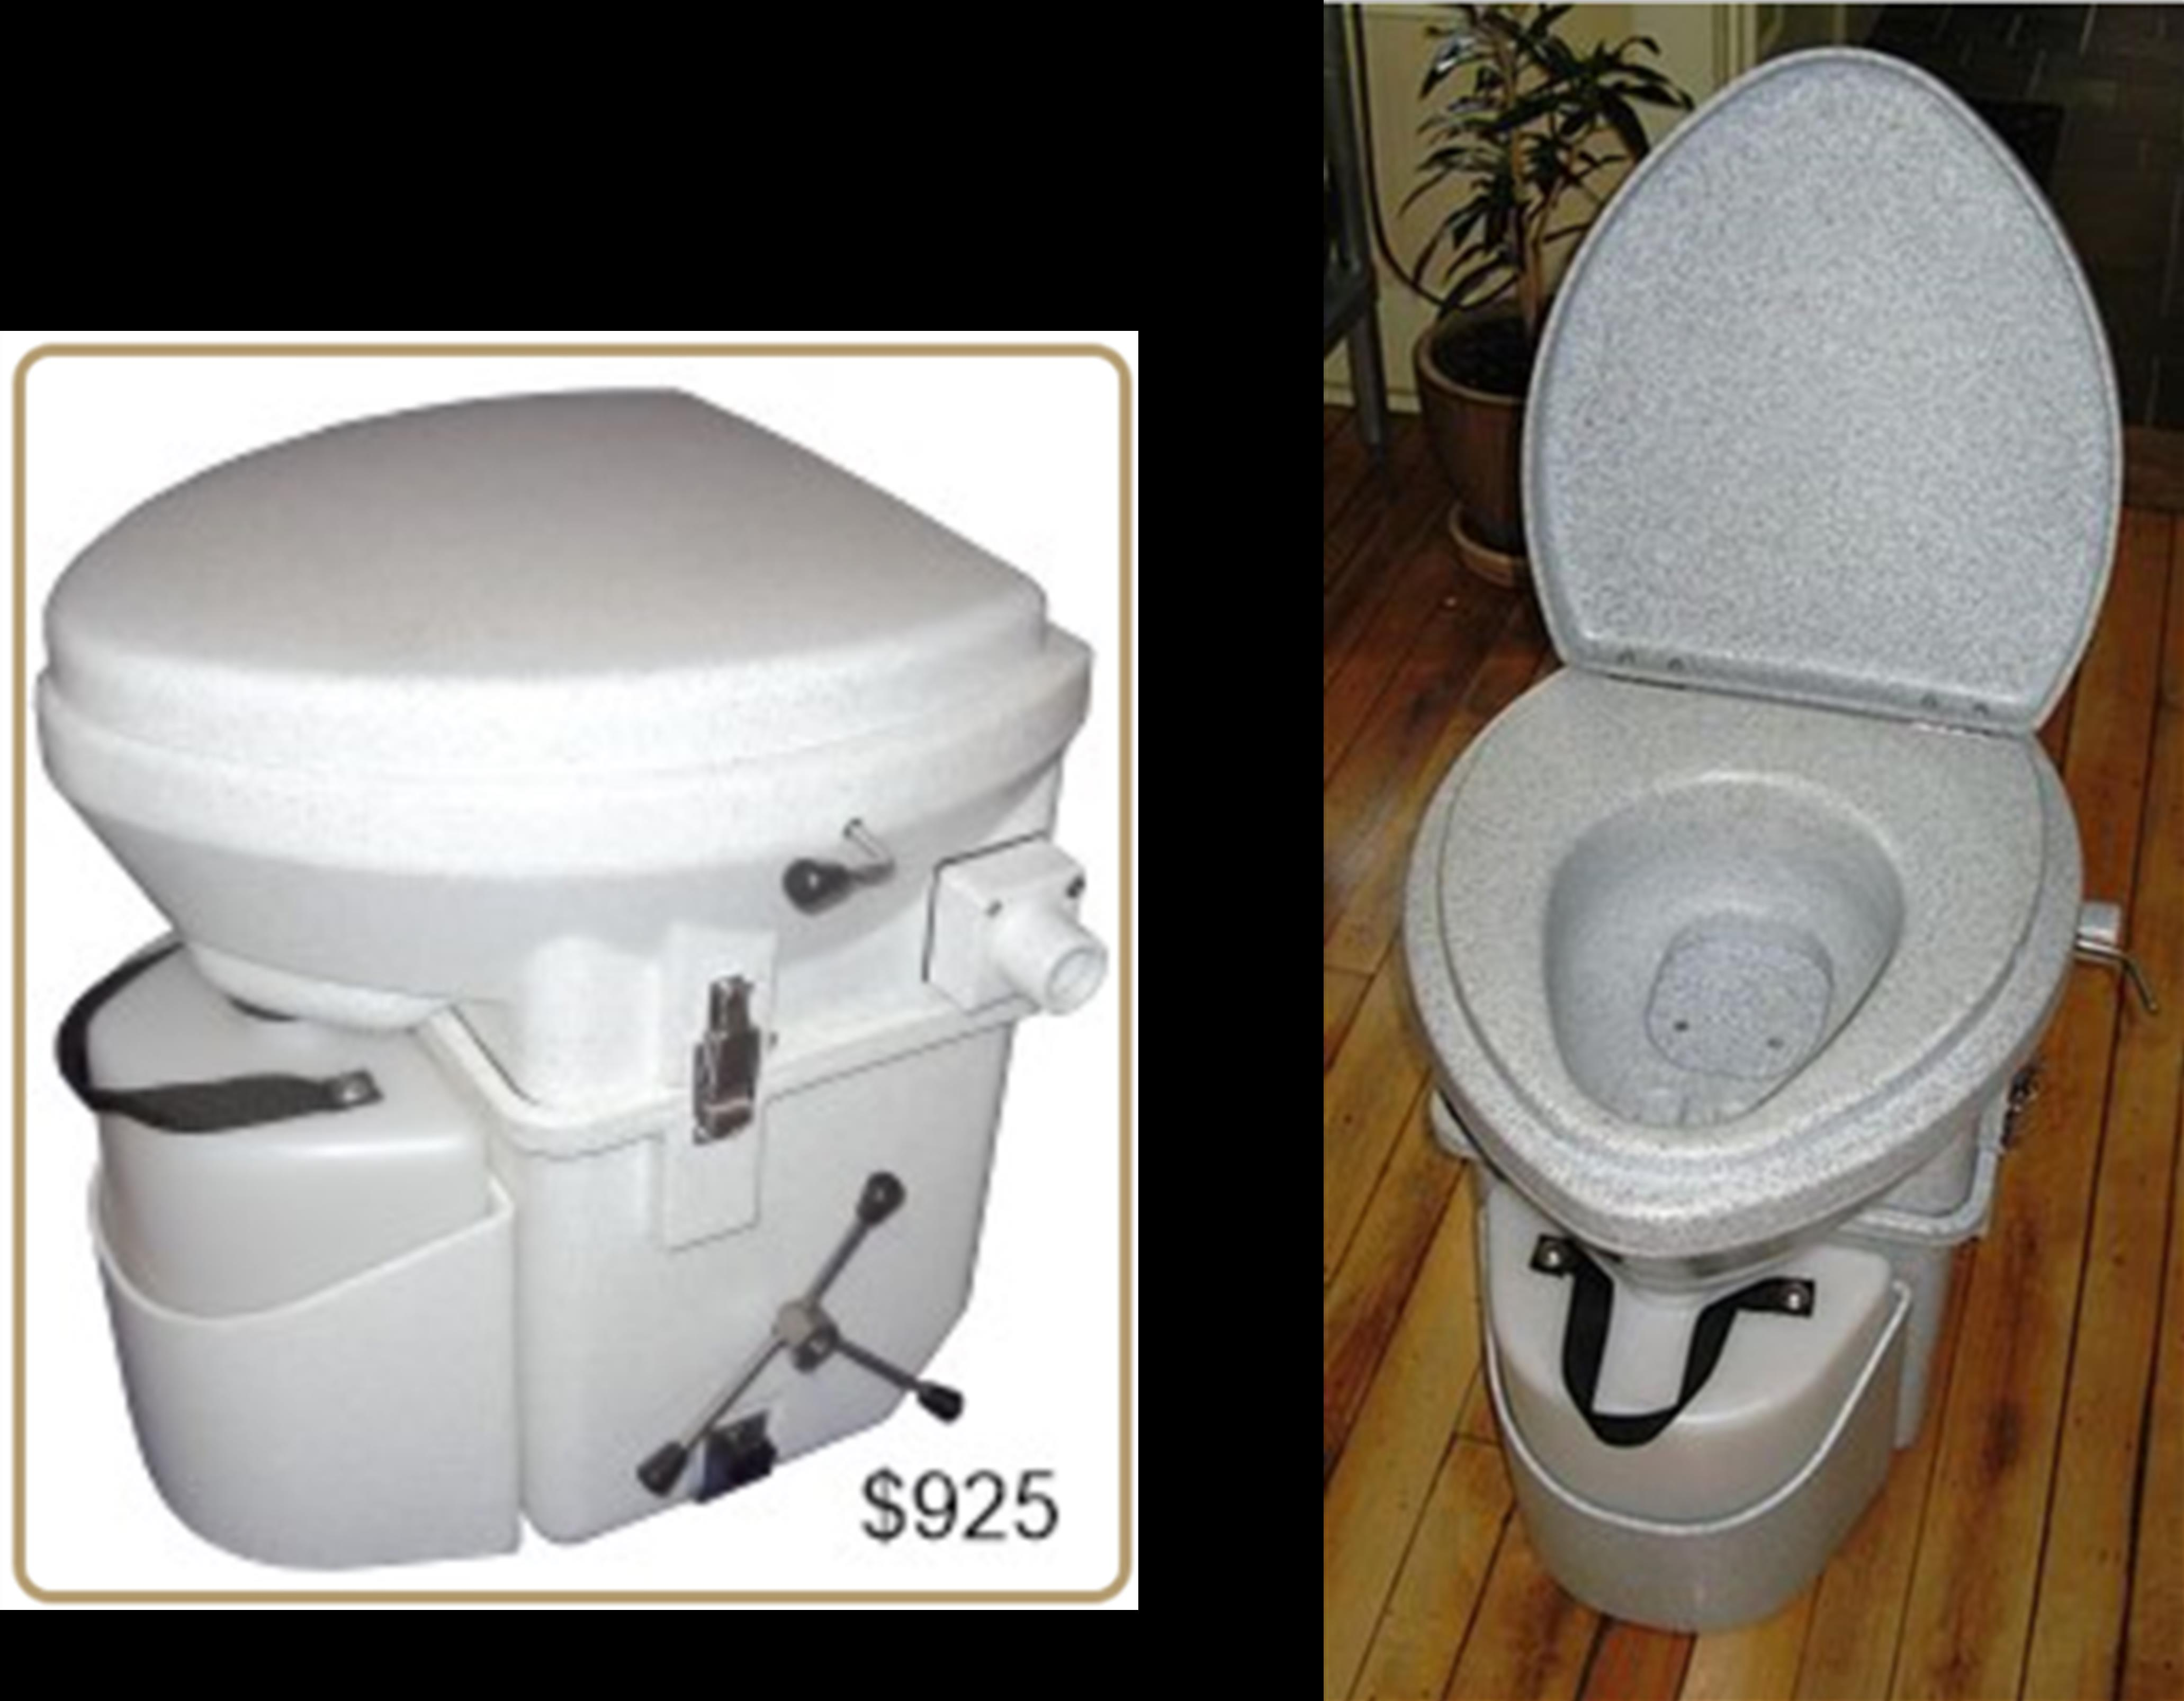 How to choose a bio toilet for giving quickly and correctly